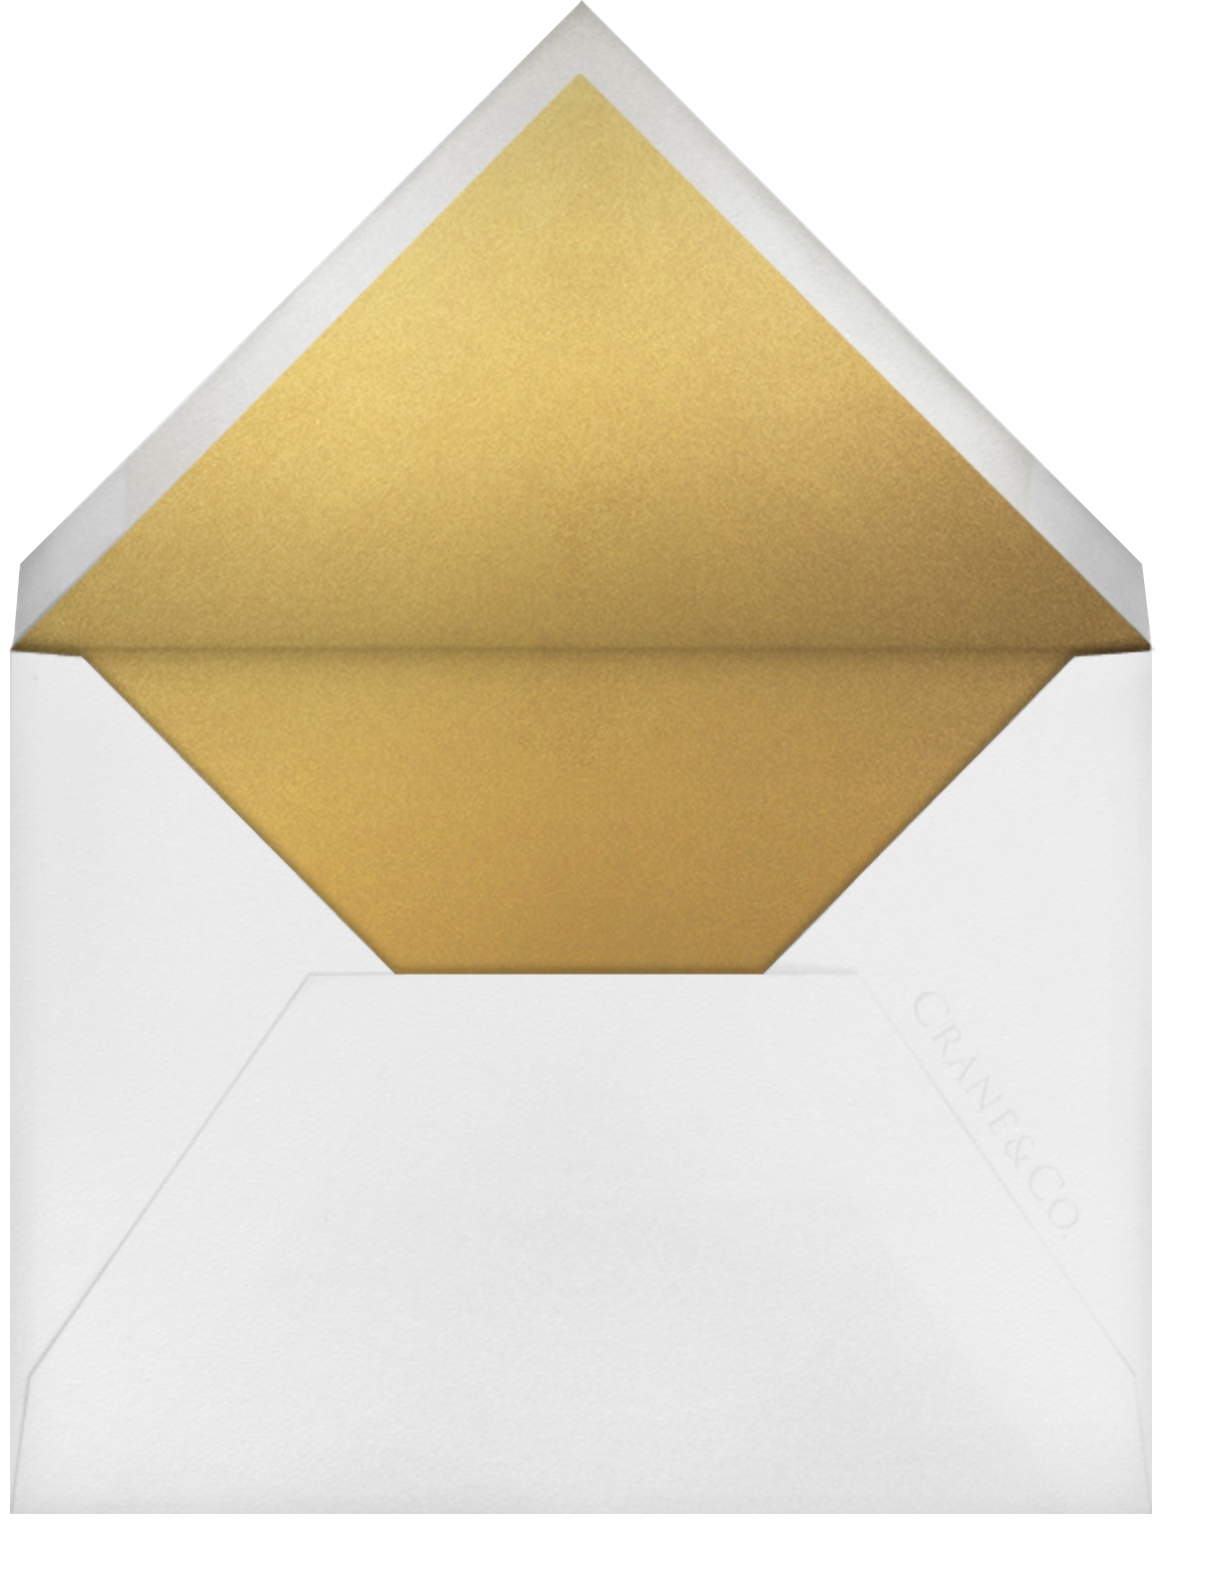 Escalier (Invitation) - Ivory and Gold - Paperless Post - Holiday Favorites - envelope back